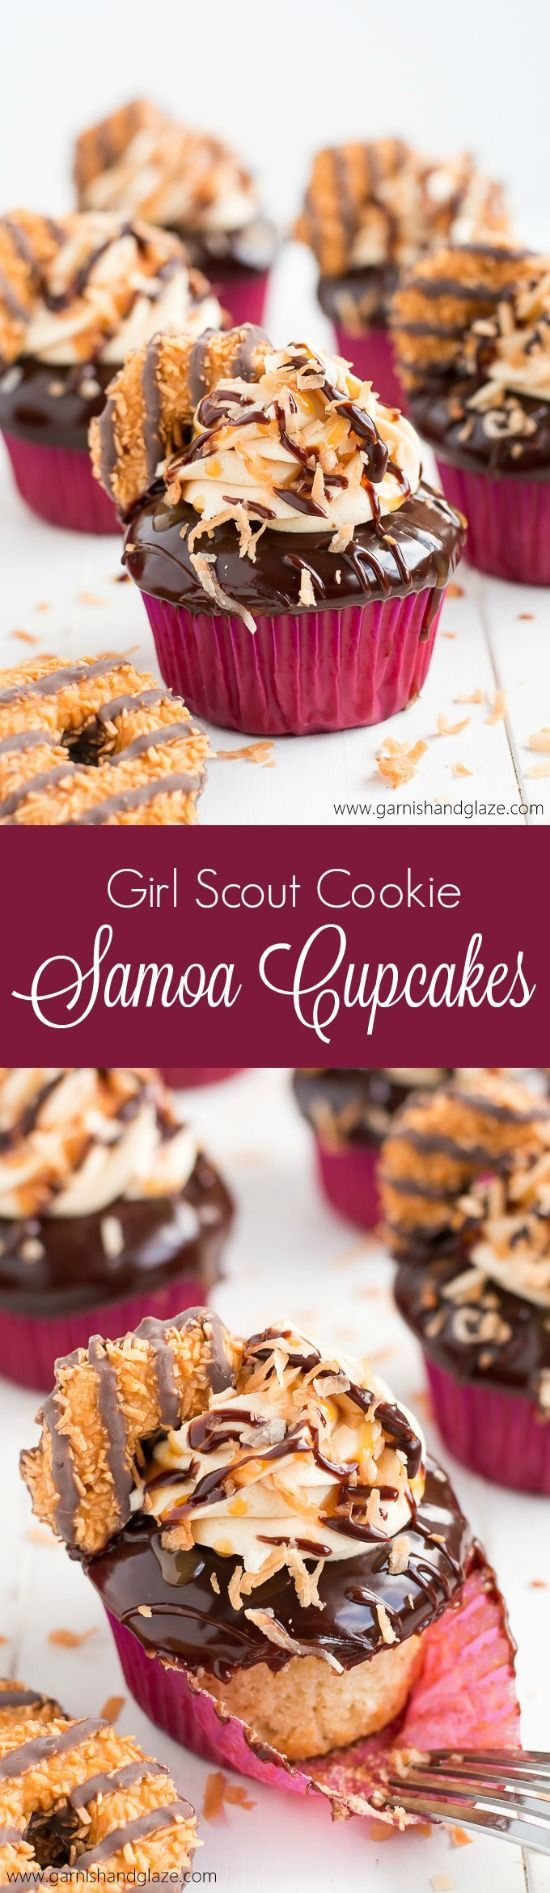 These Girl Scout Cookie Samoa Cupcakes are a rich chocolaty, caramel, and toasted coconut dream come true!